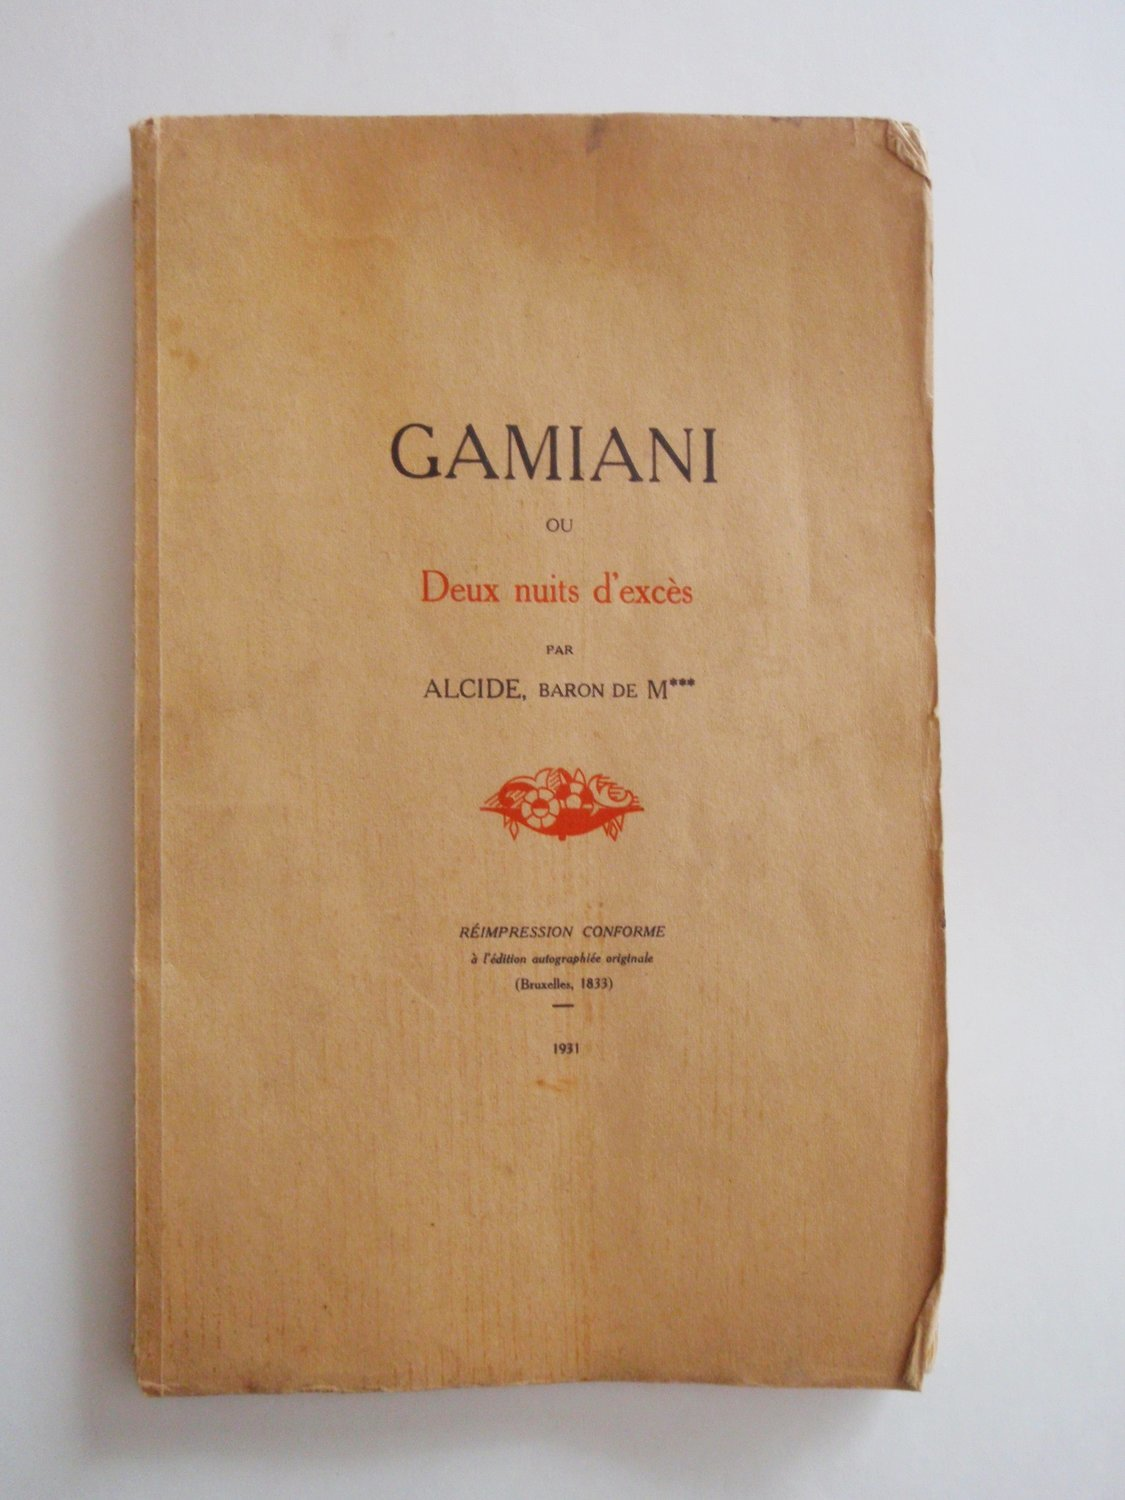 1931 Gamiani Erotica Two Nights of Excess 9 Erotic Gravure Clandestine Ltd Ed Printing